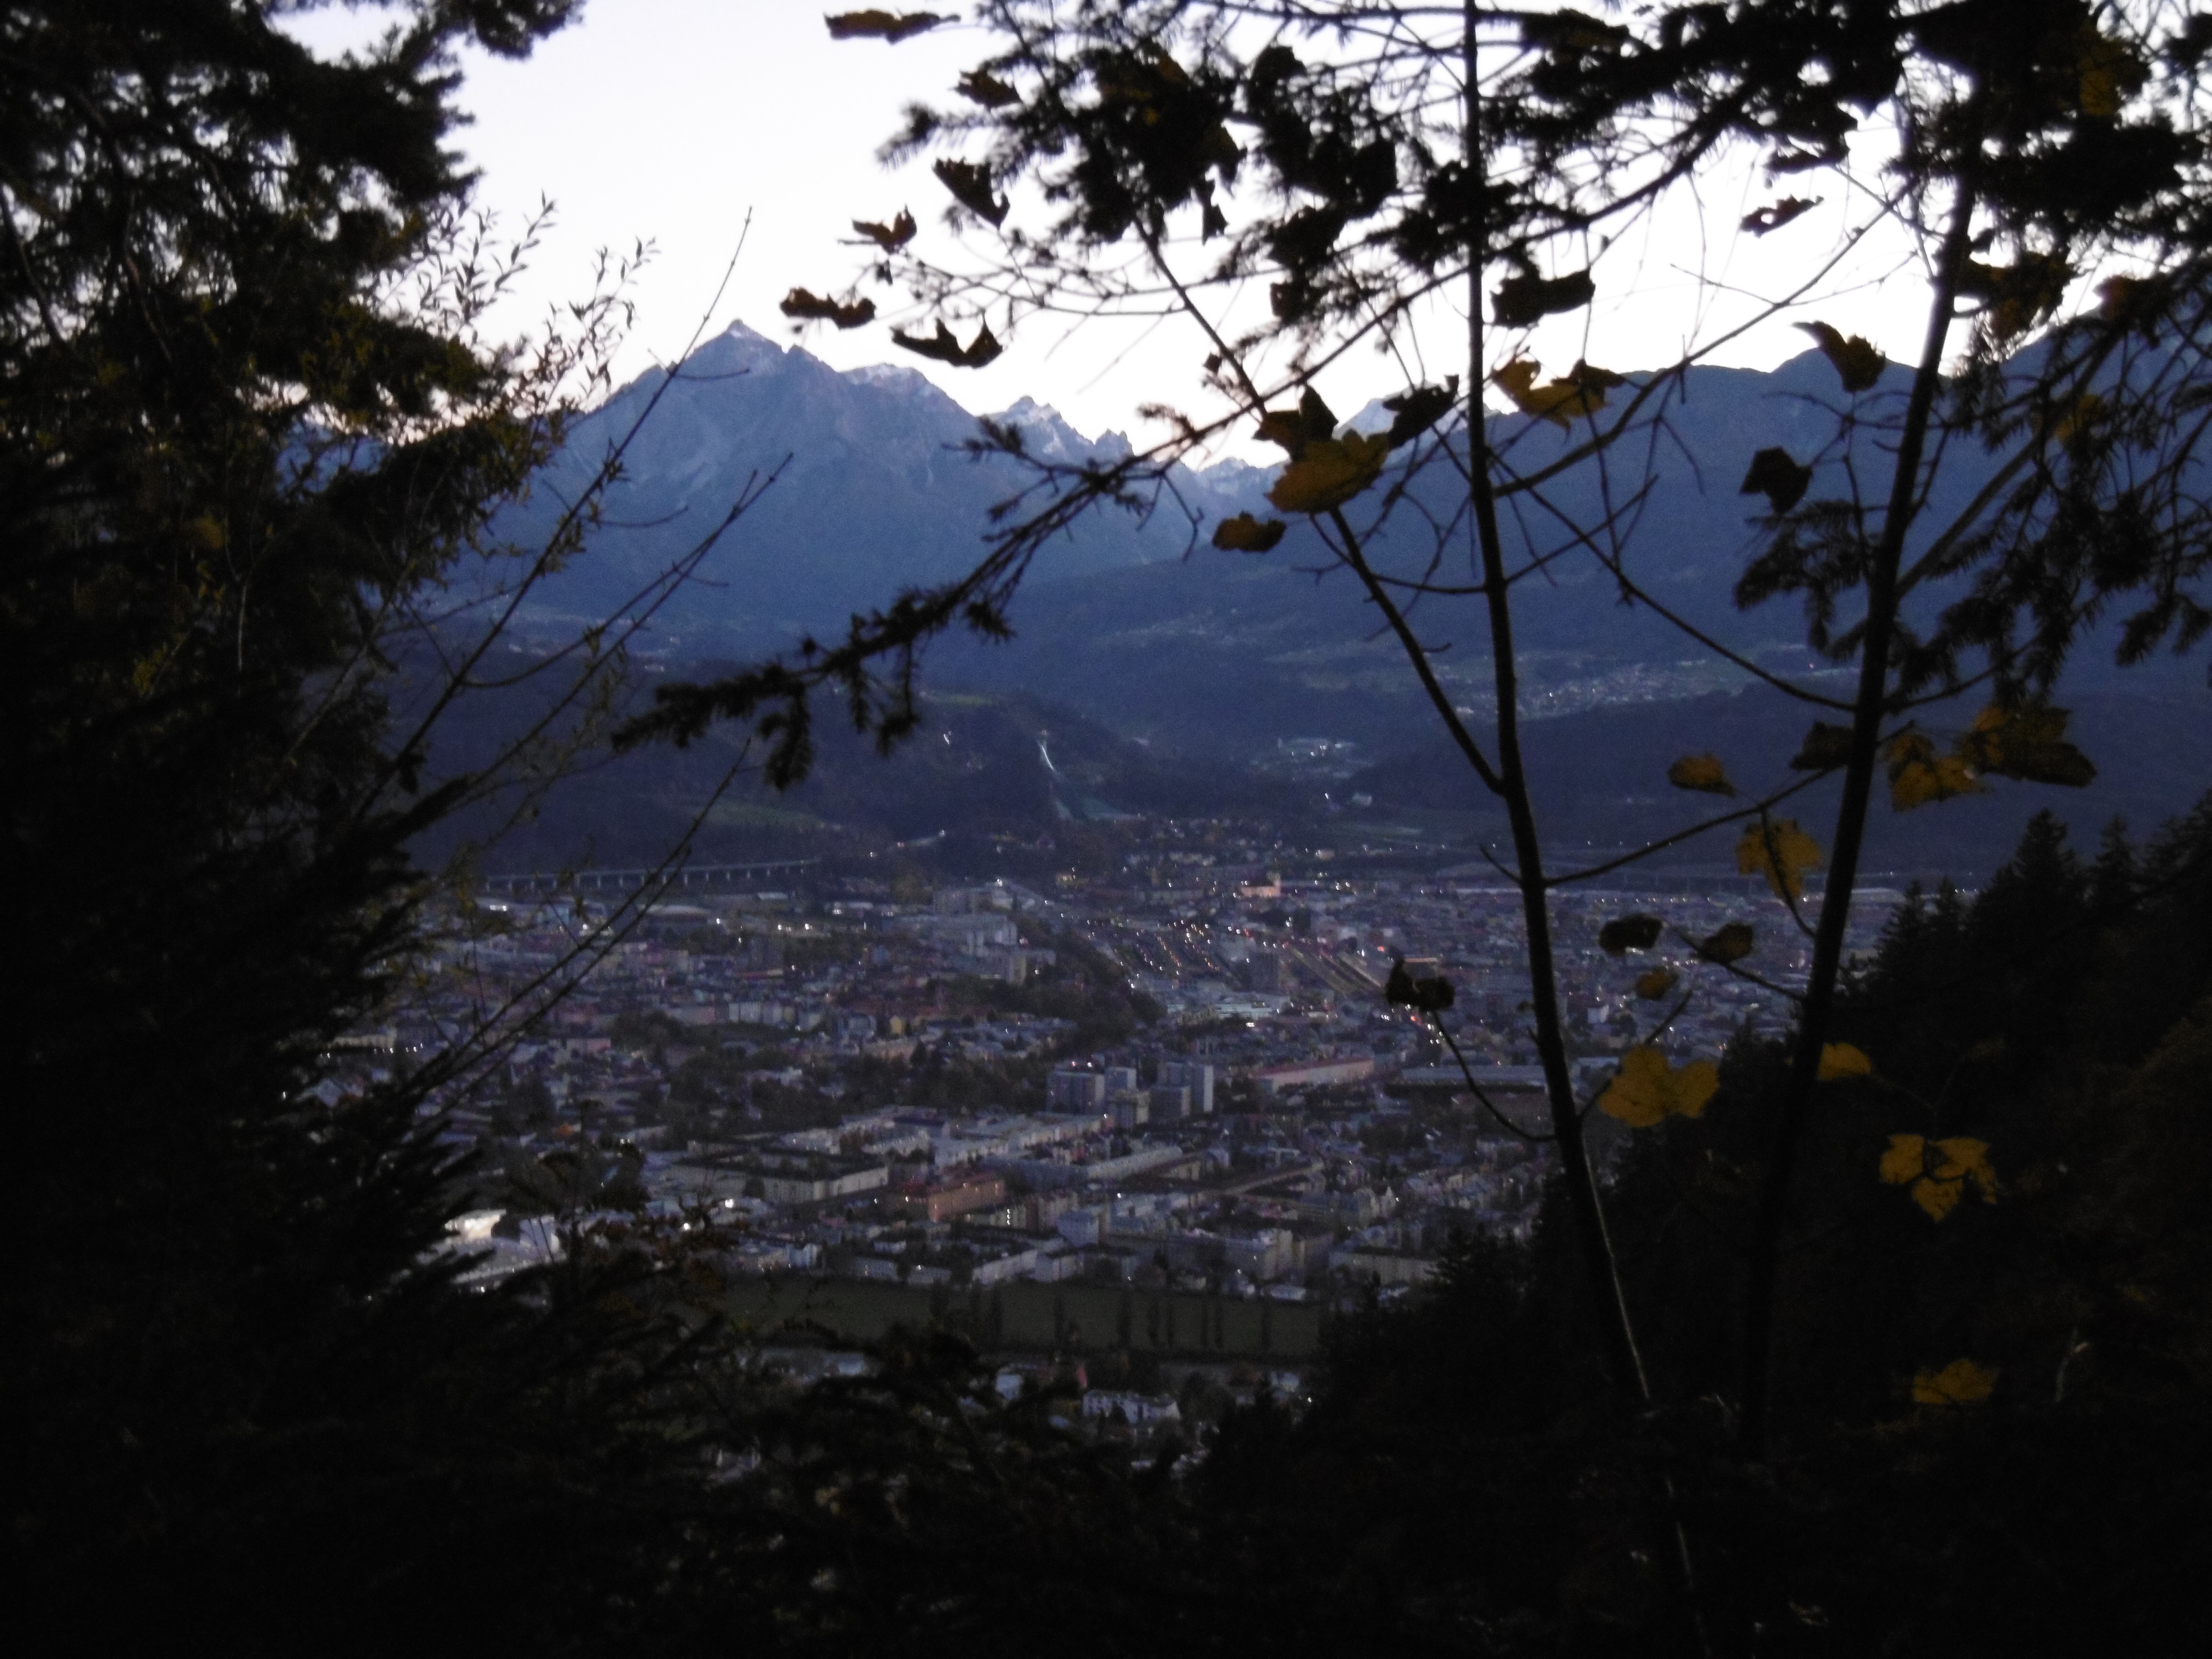 A view of Innsbruck looking south between trees over the river and town in the valley